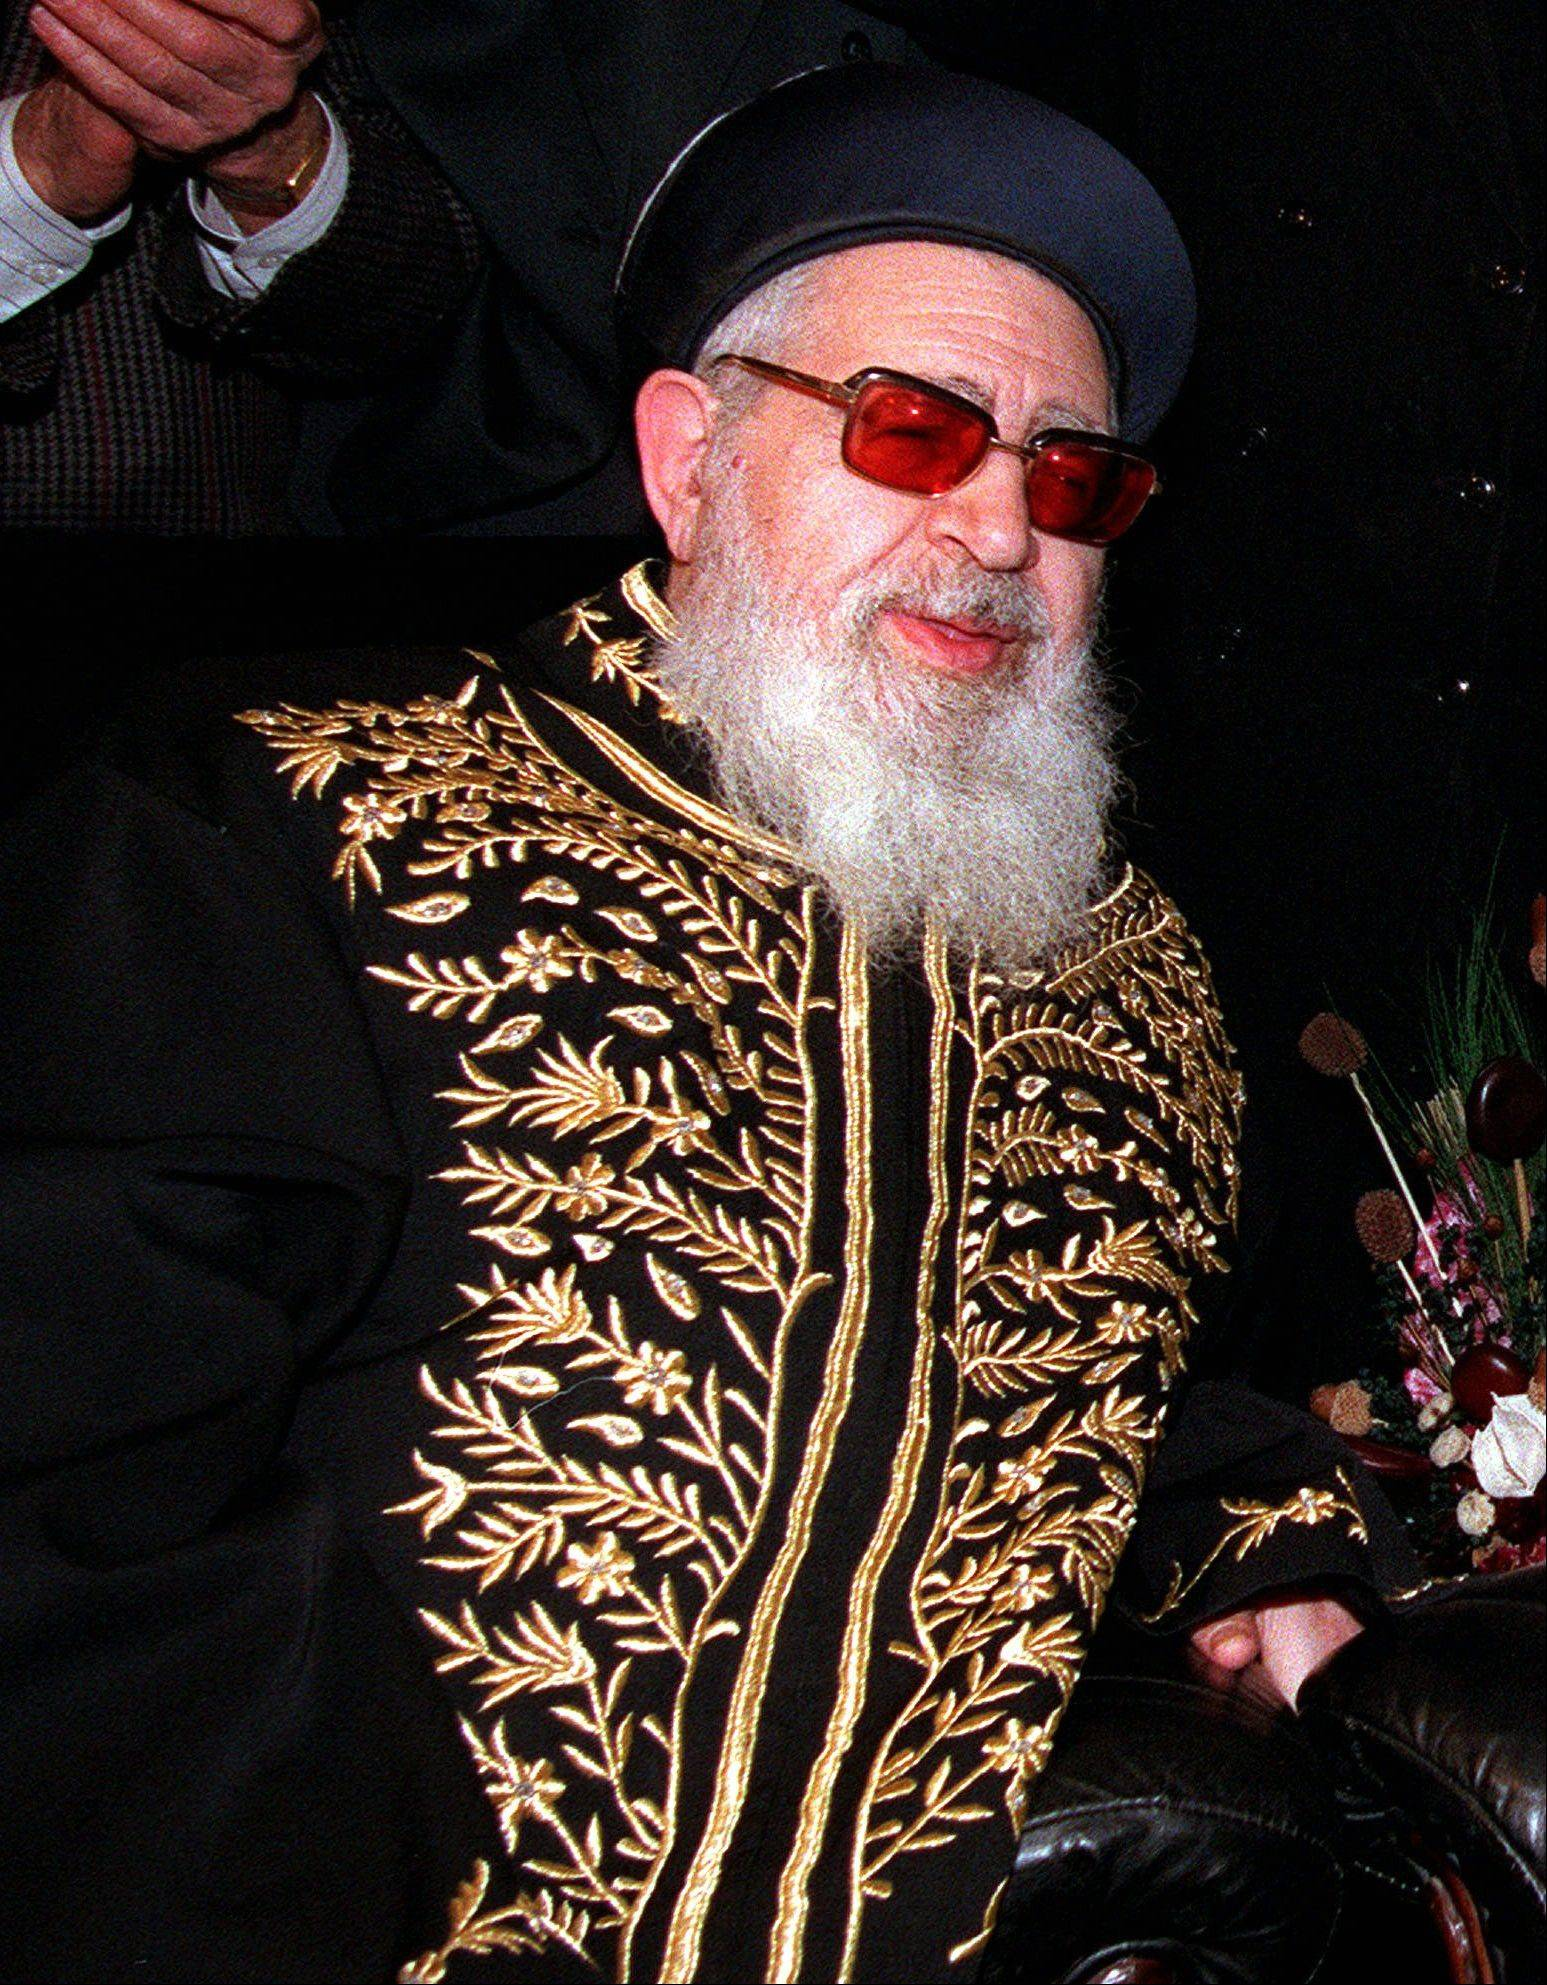 This April 20, 1997 file photo shows Shas party spiritual leader Rabbi Ovadia Yosef in Jerusalem. Rabbi Ovadia, the religious scholar and spiritual leader of Israel's Sephardic Jews who transformed his downtrodden community of immigrants from North Africa and Arab nations and their descendants into a powerful force in Israeli politics, has died. He was 93.